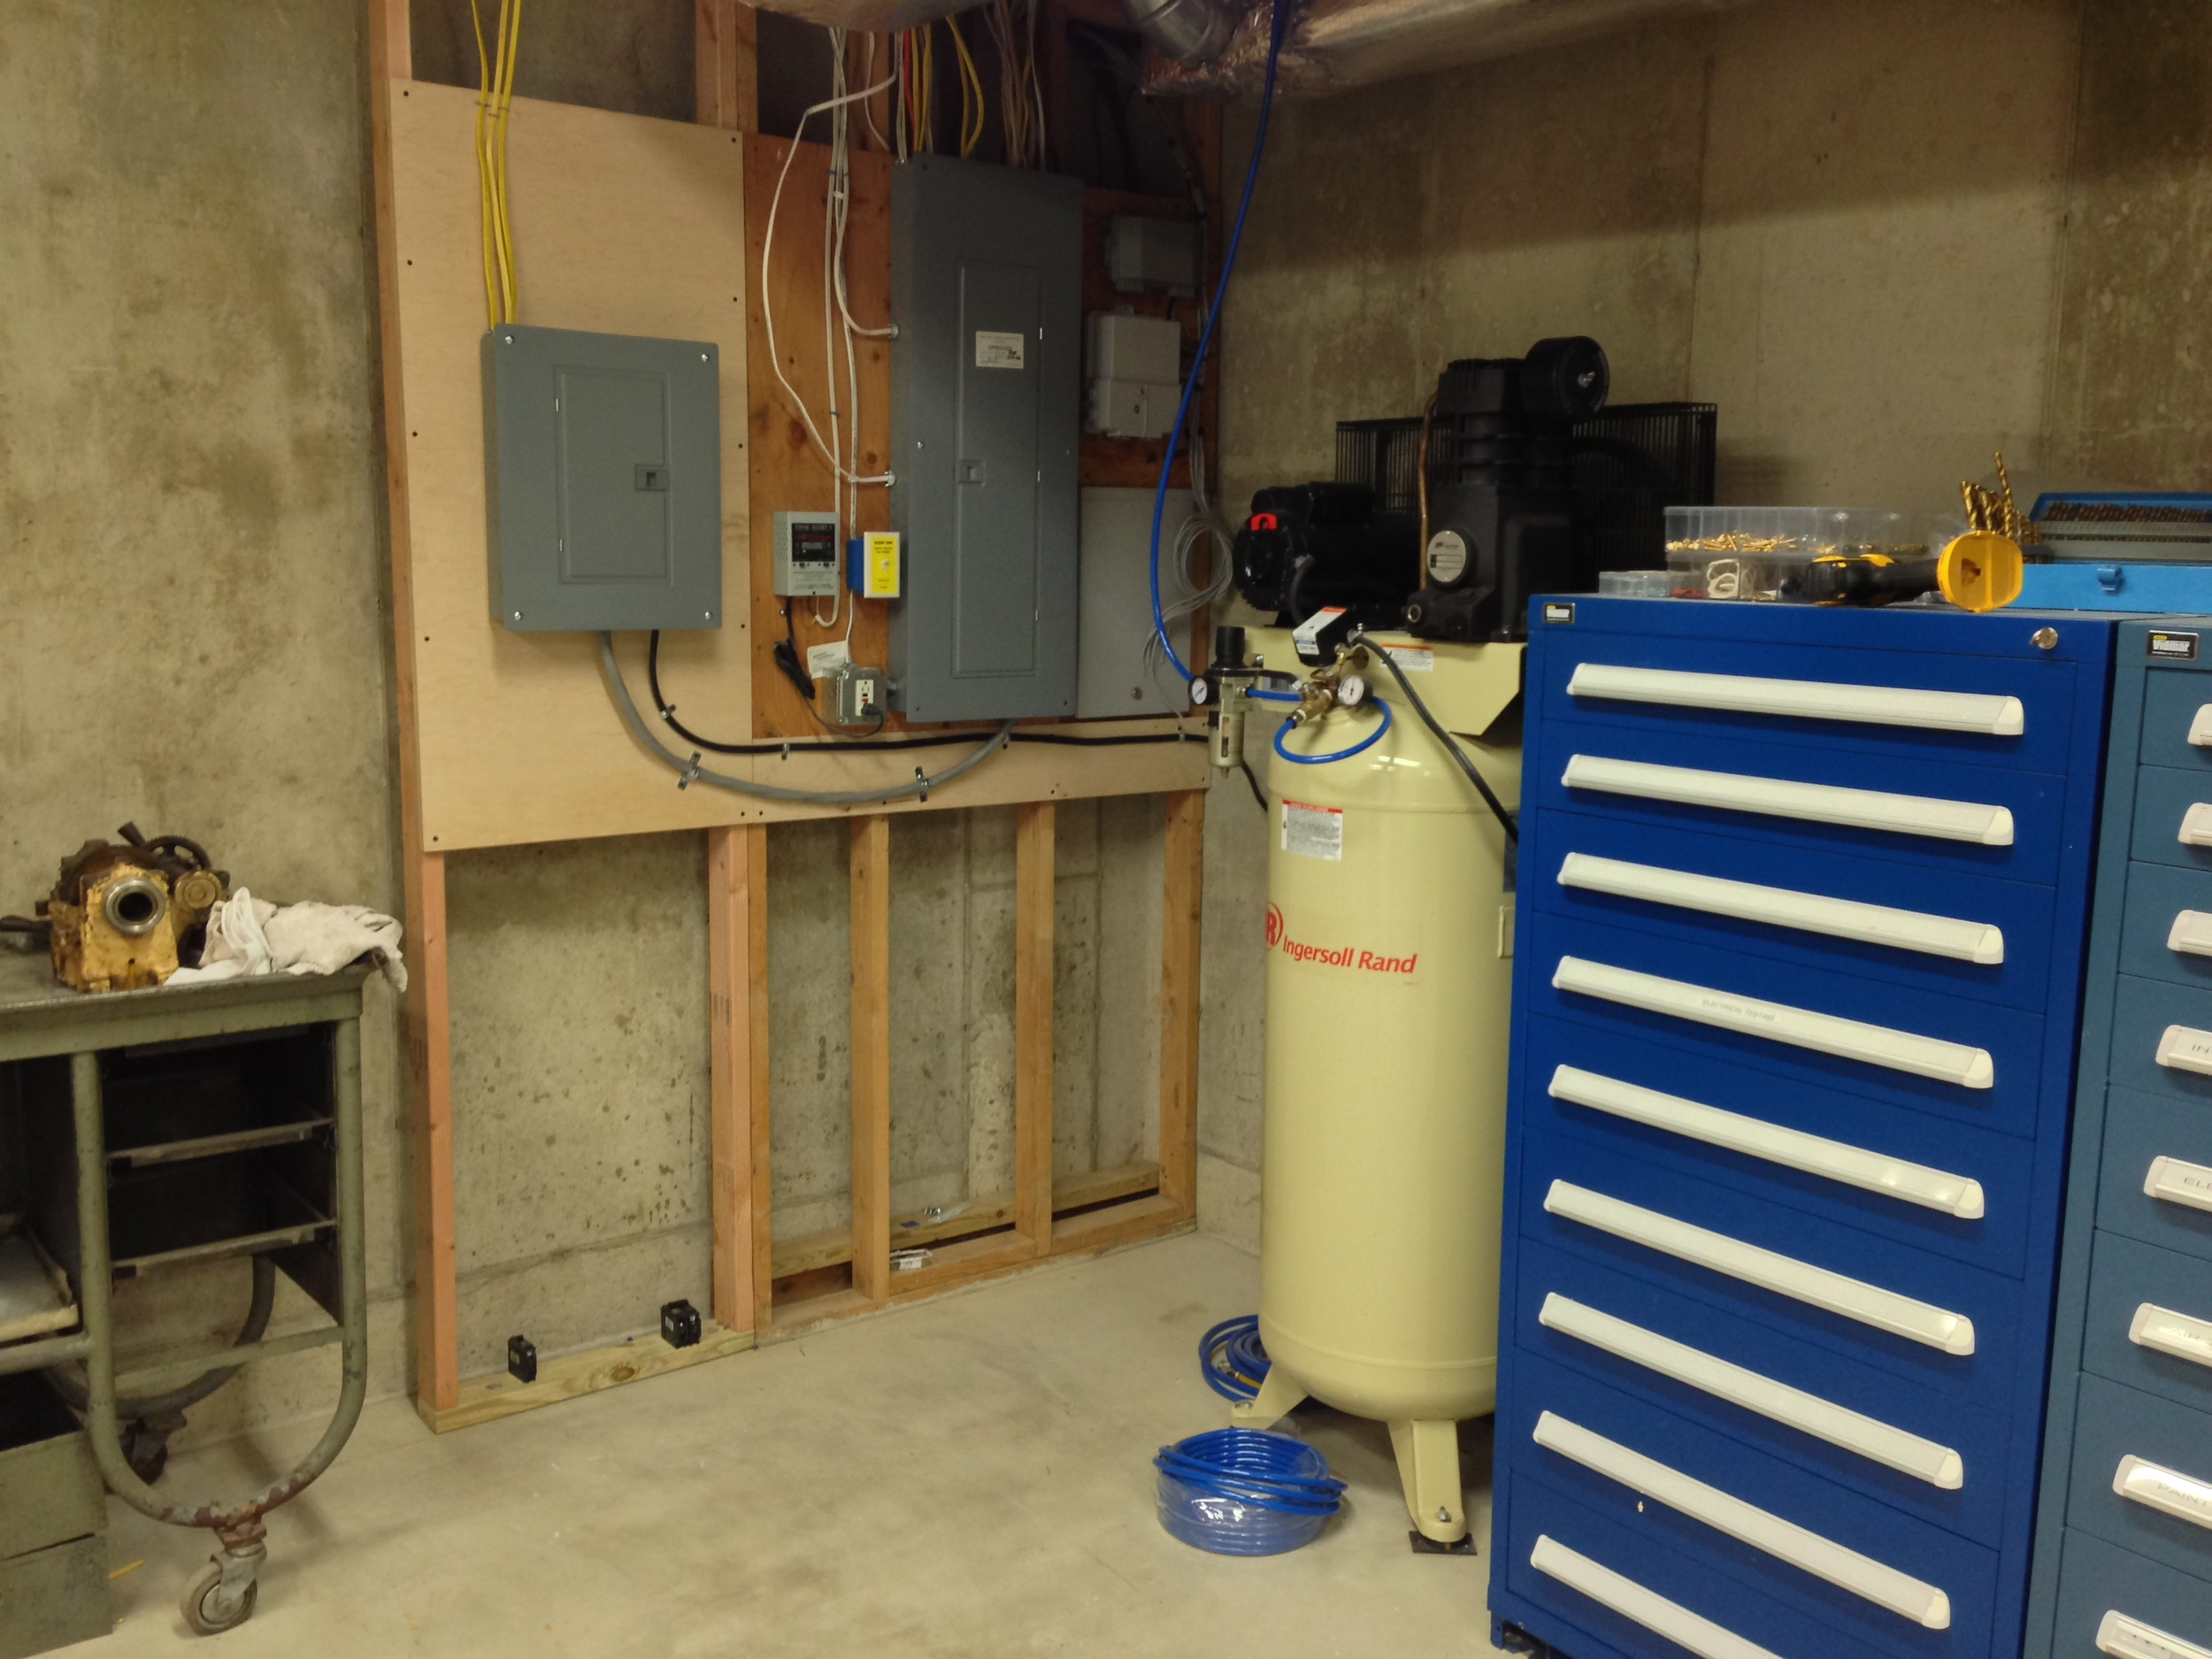 New 125amp sub panel went in to power the shop. Vidmar cabinets next to the Ingersoll Rand 5hp compressor.